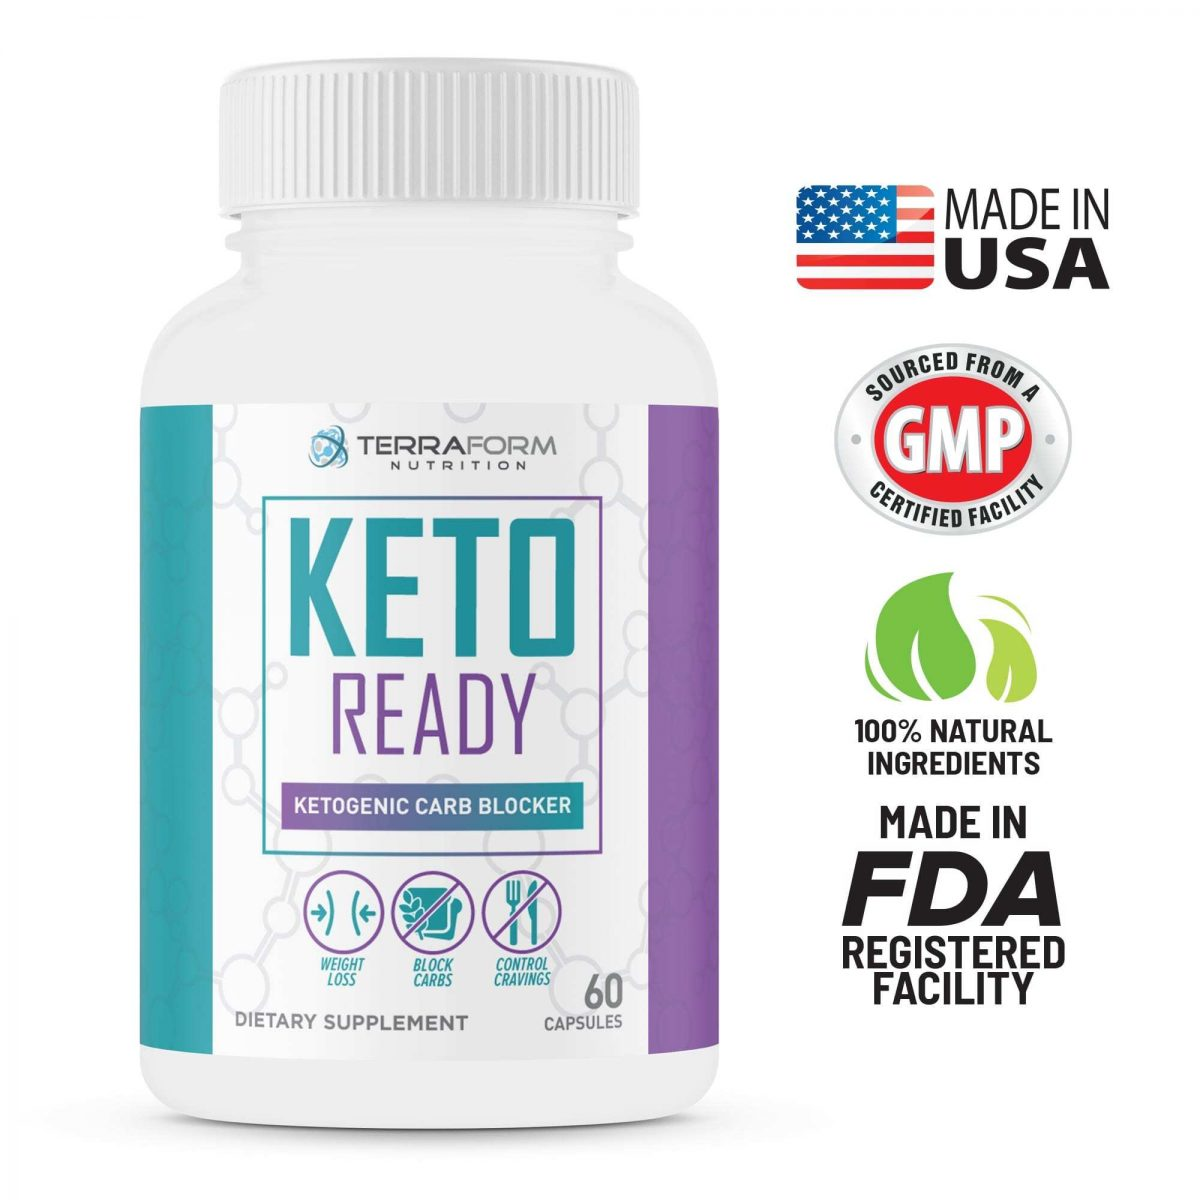 Keto Ready - Max Strength Keto Carb Blocker 1200mg – 60 Capsules - TerraForm Nutrition-3321